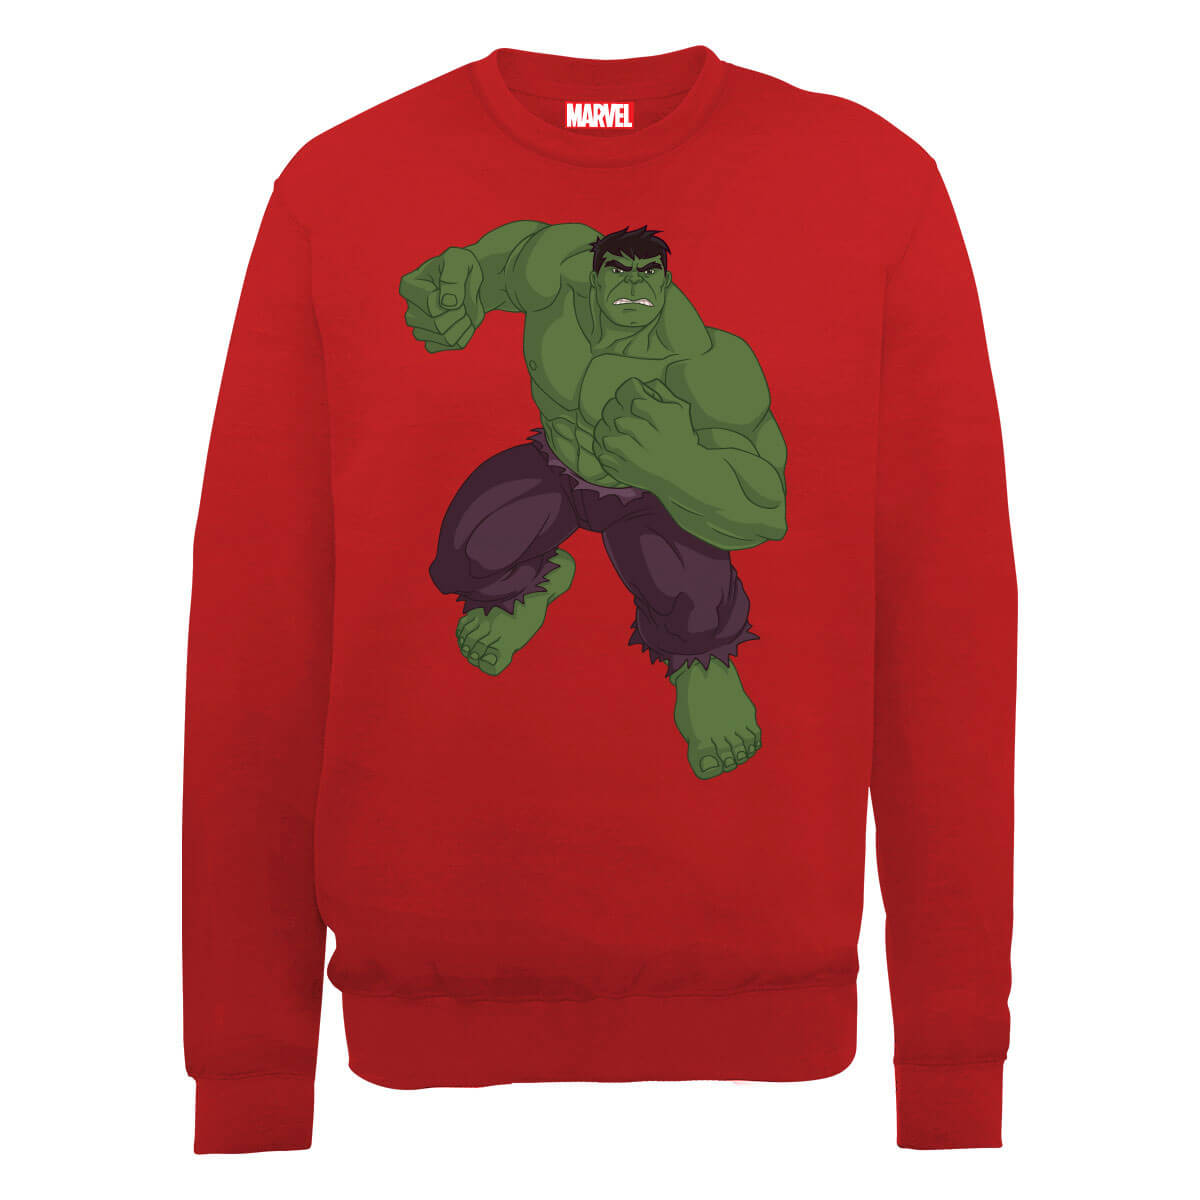 Marvel Avengers Assemble Hulk Pose Sweatshirt - Red